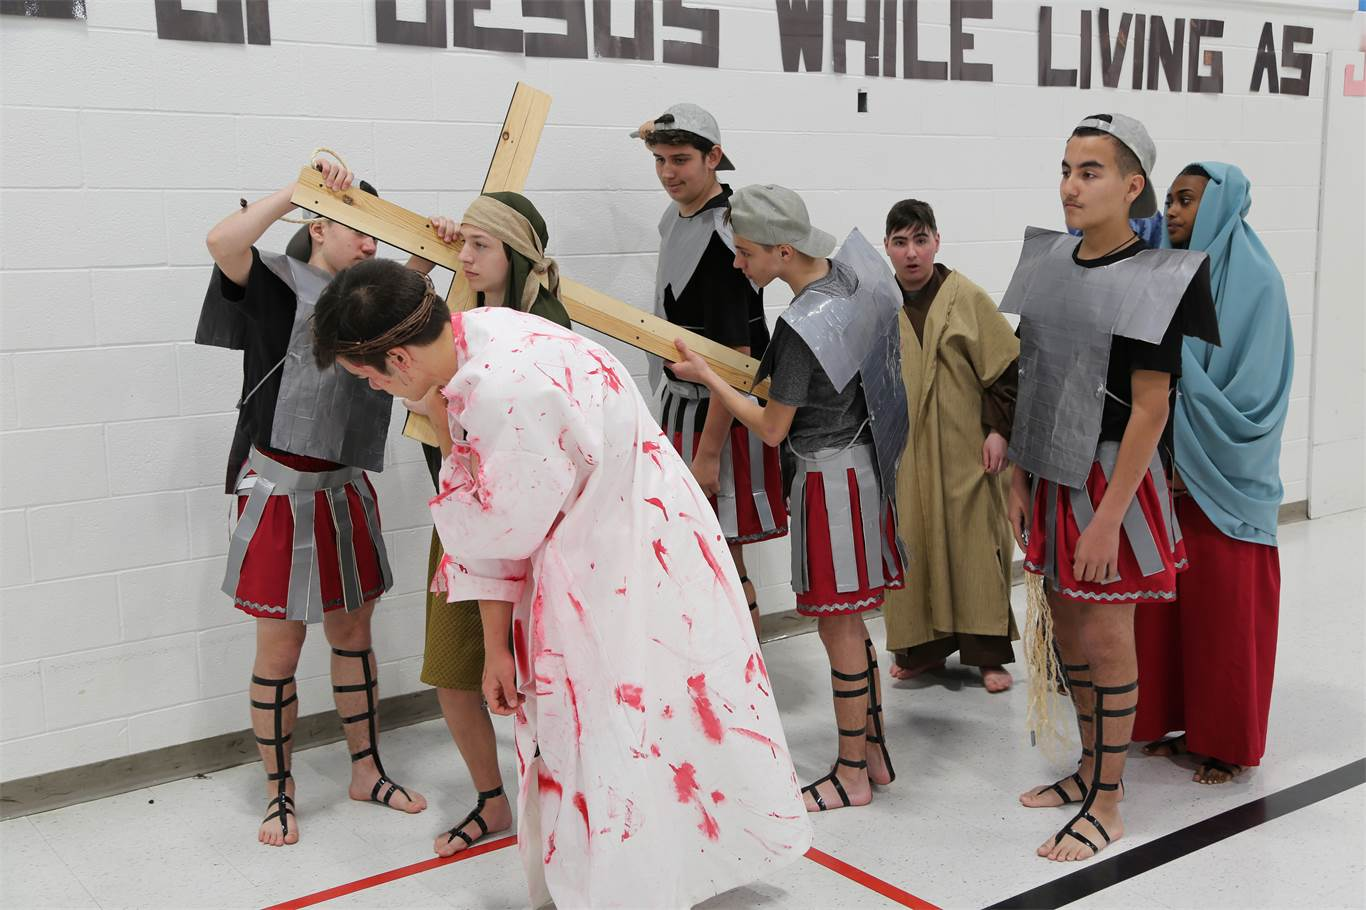 St. Marguerite d'Youville's Passion Play performance serves as a reminder of Jesus' love